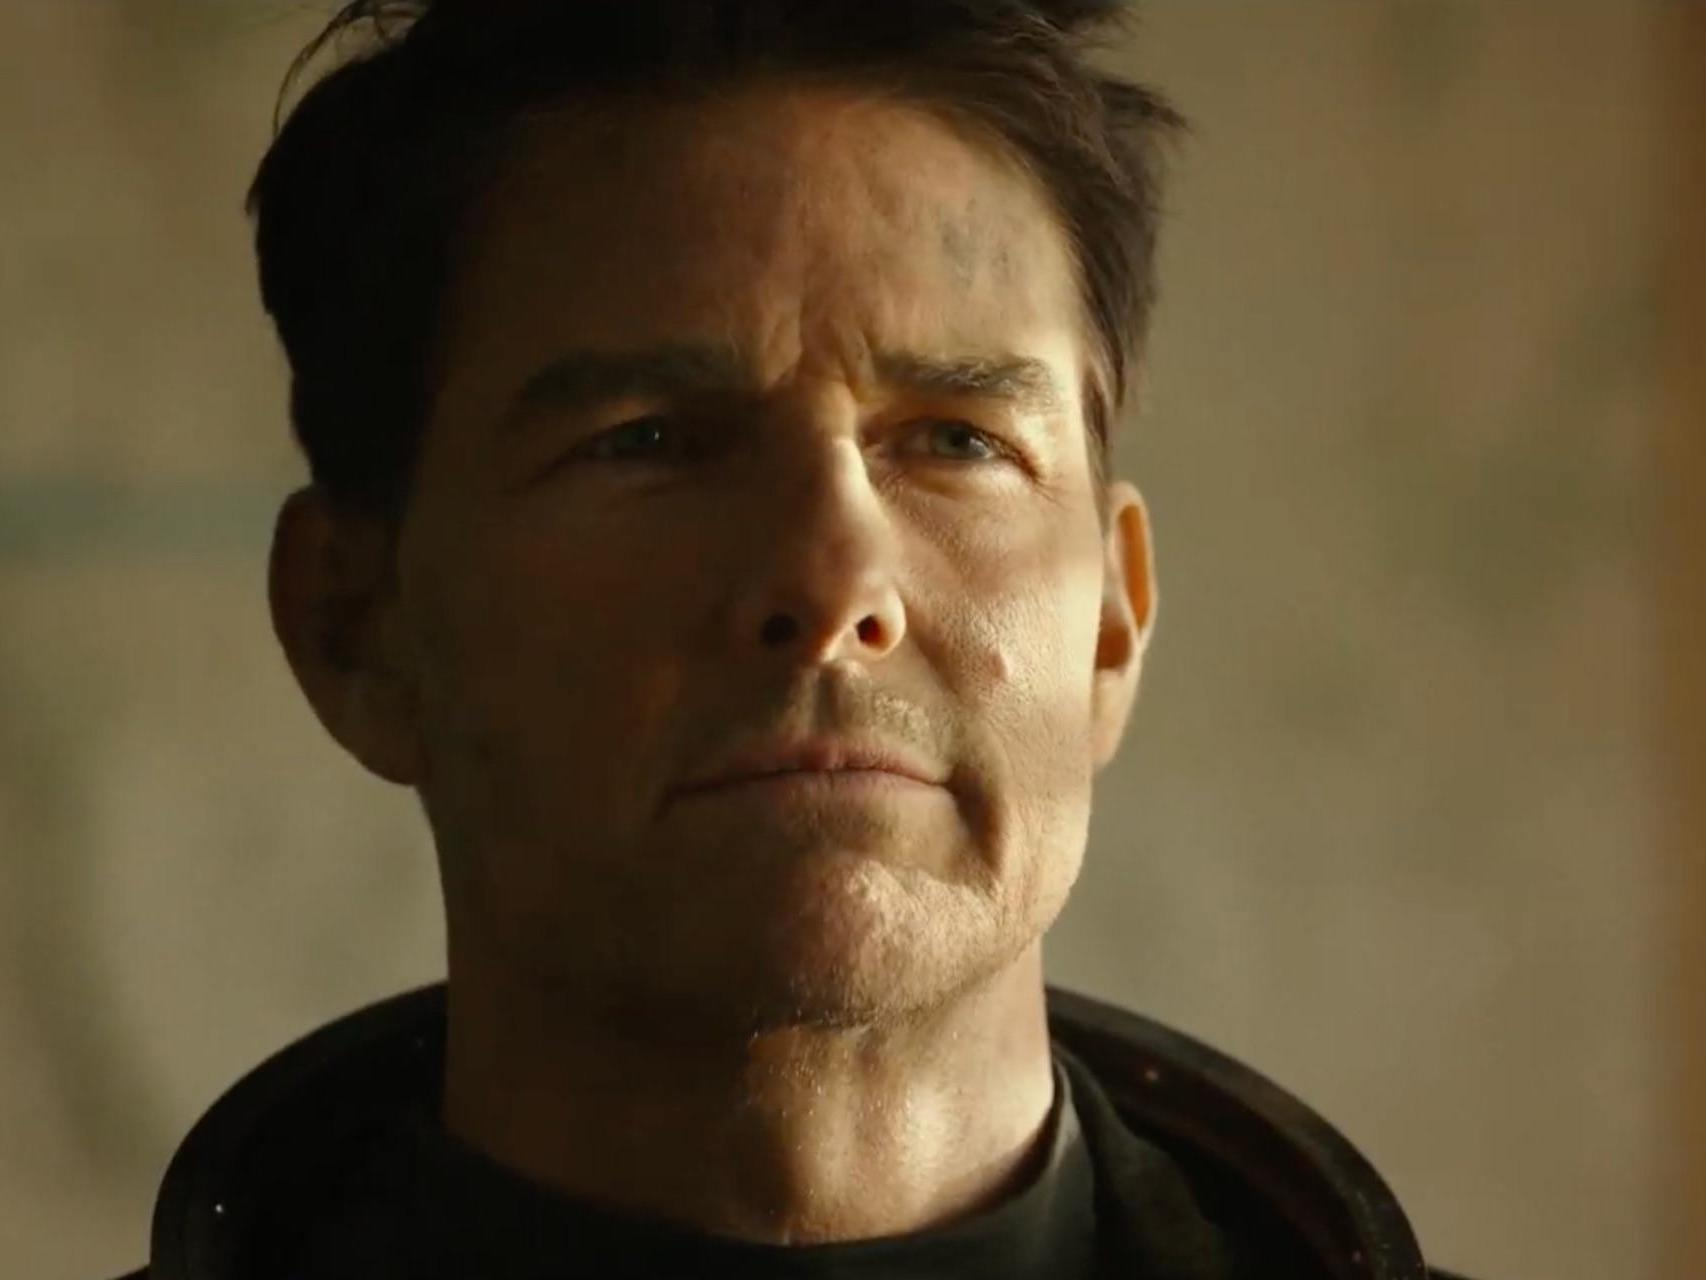 Top Gun: Maverick trailer introduced by Tom Cruise at Comic-Con